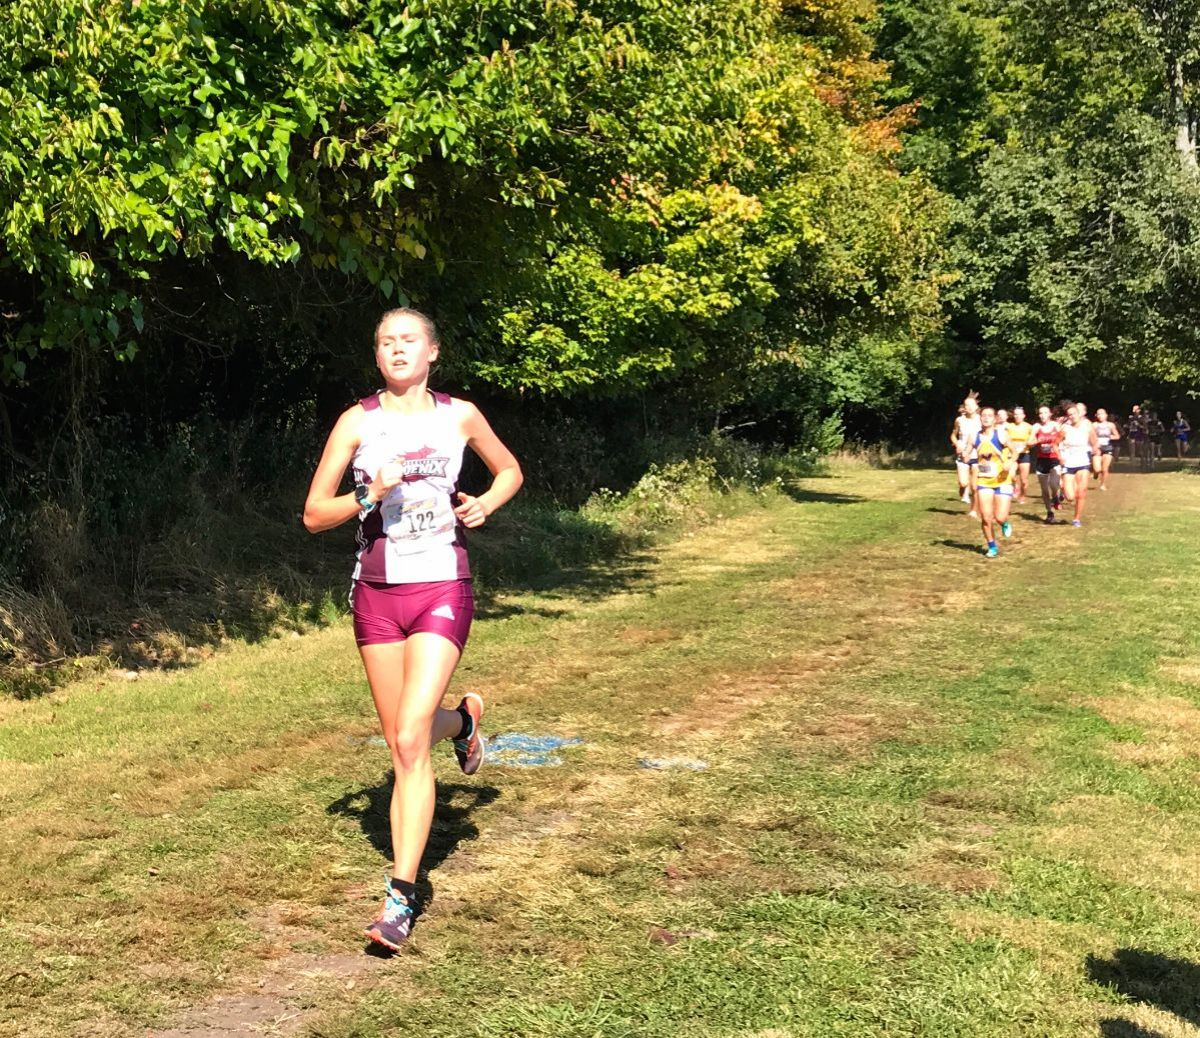 Petrova Leads Womens XC at 'Live in Lou' Cross Country Classic